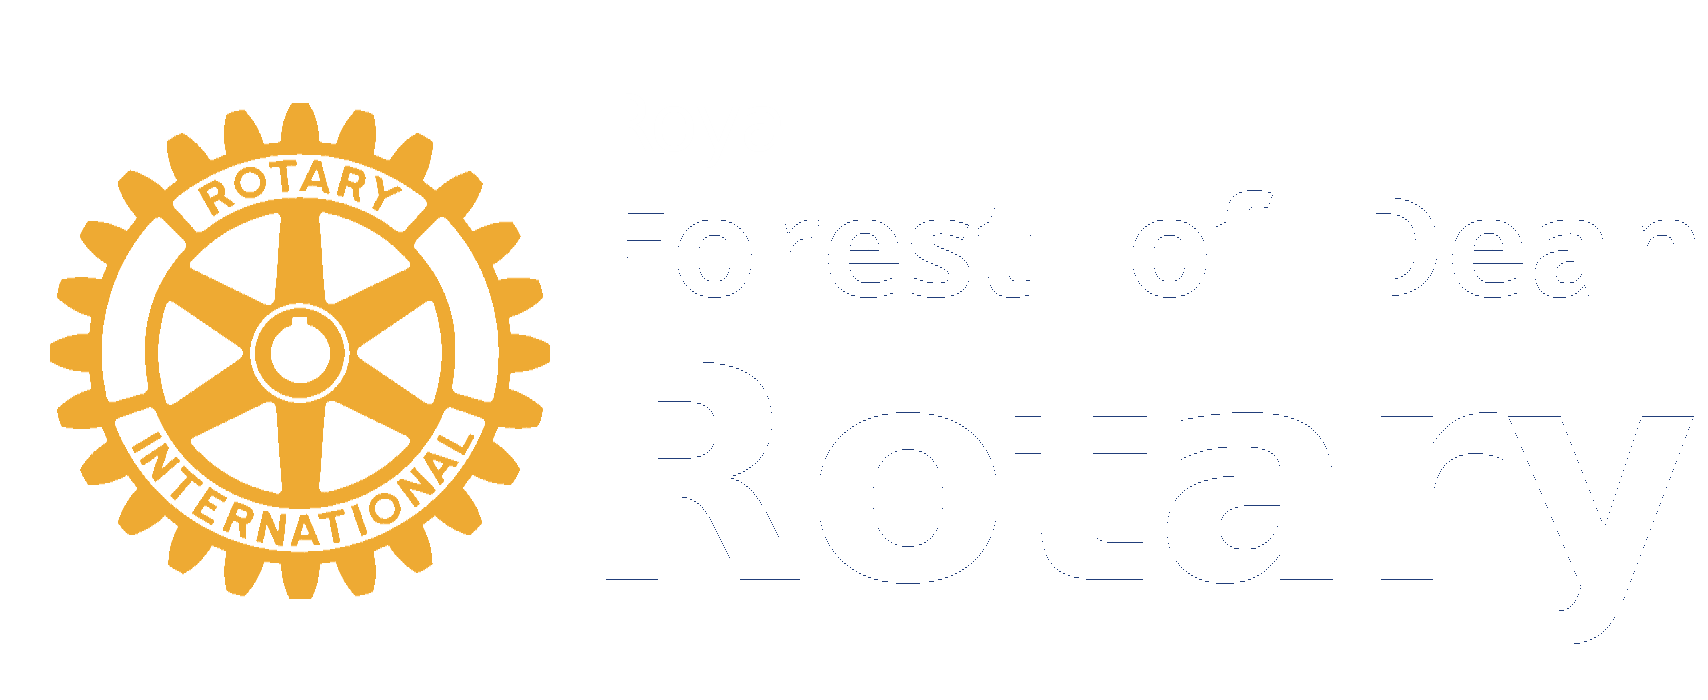 The Rotary Club of the Forest of Dean